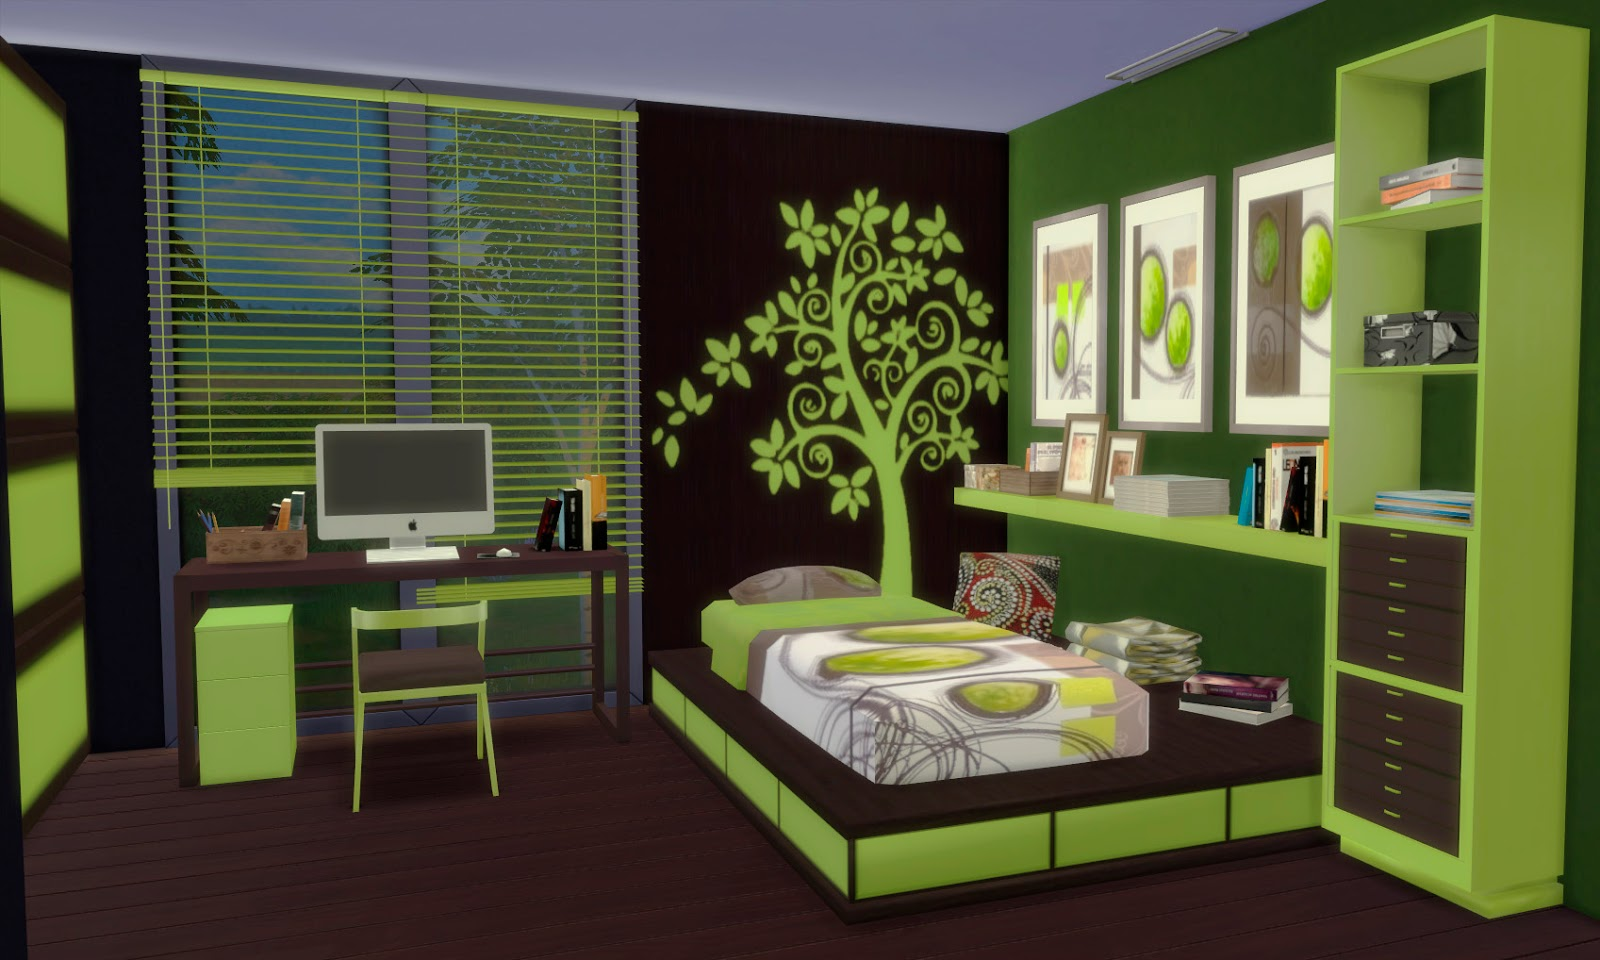 Bilbao Bedroom Set by pqsim4